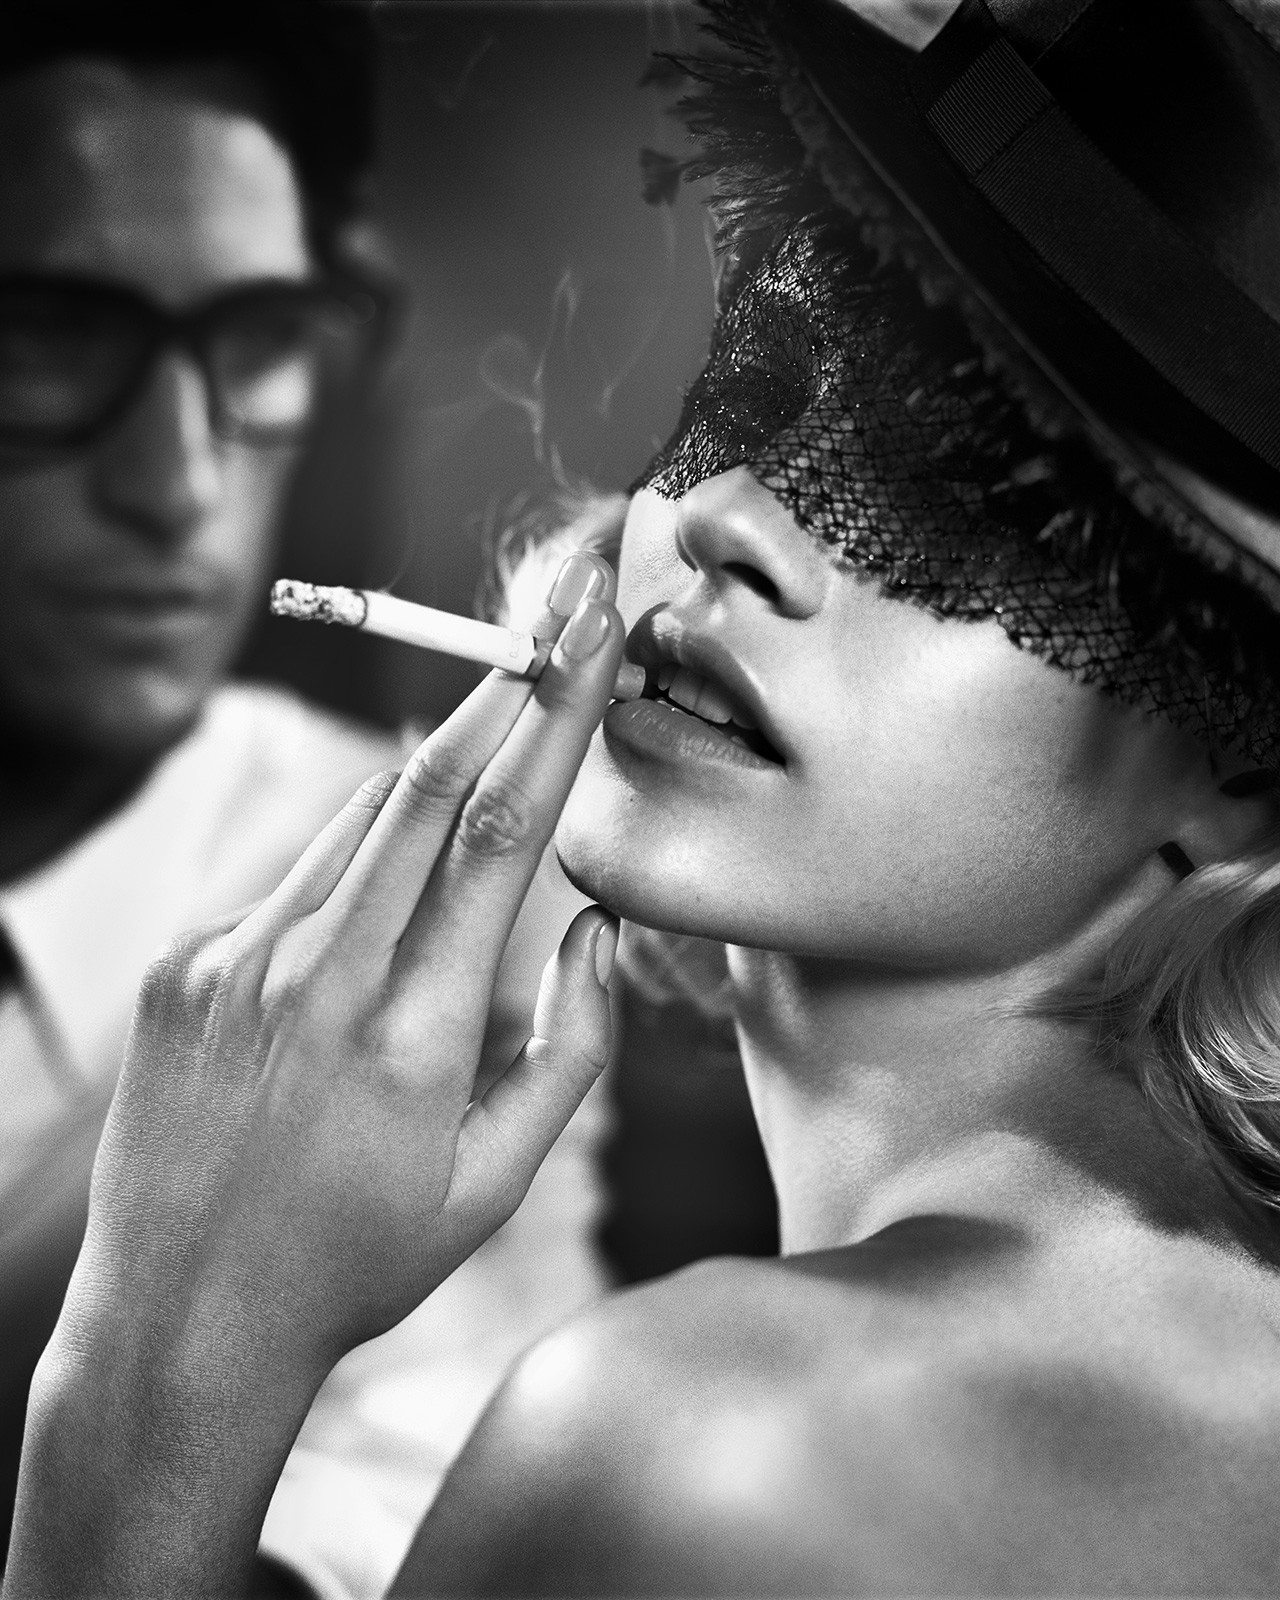 Vincent-Peters-exposition-hune-paris-folkr-13